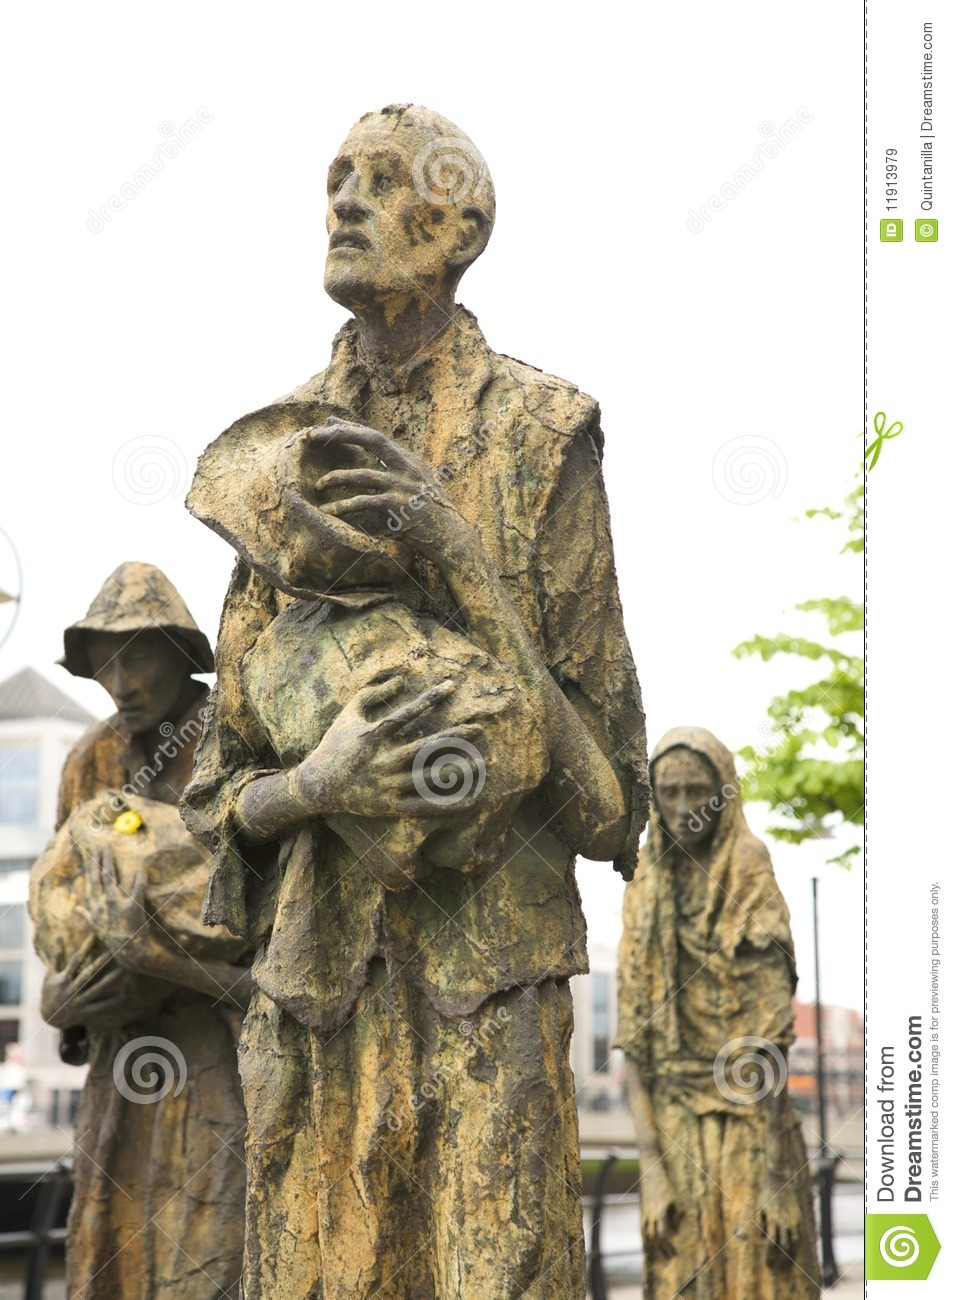 famine memorial statues royalty free stock images image